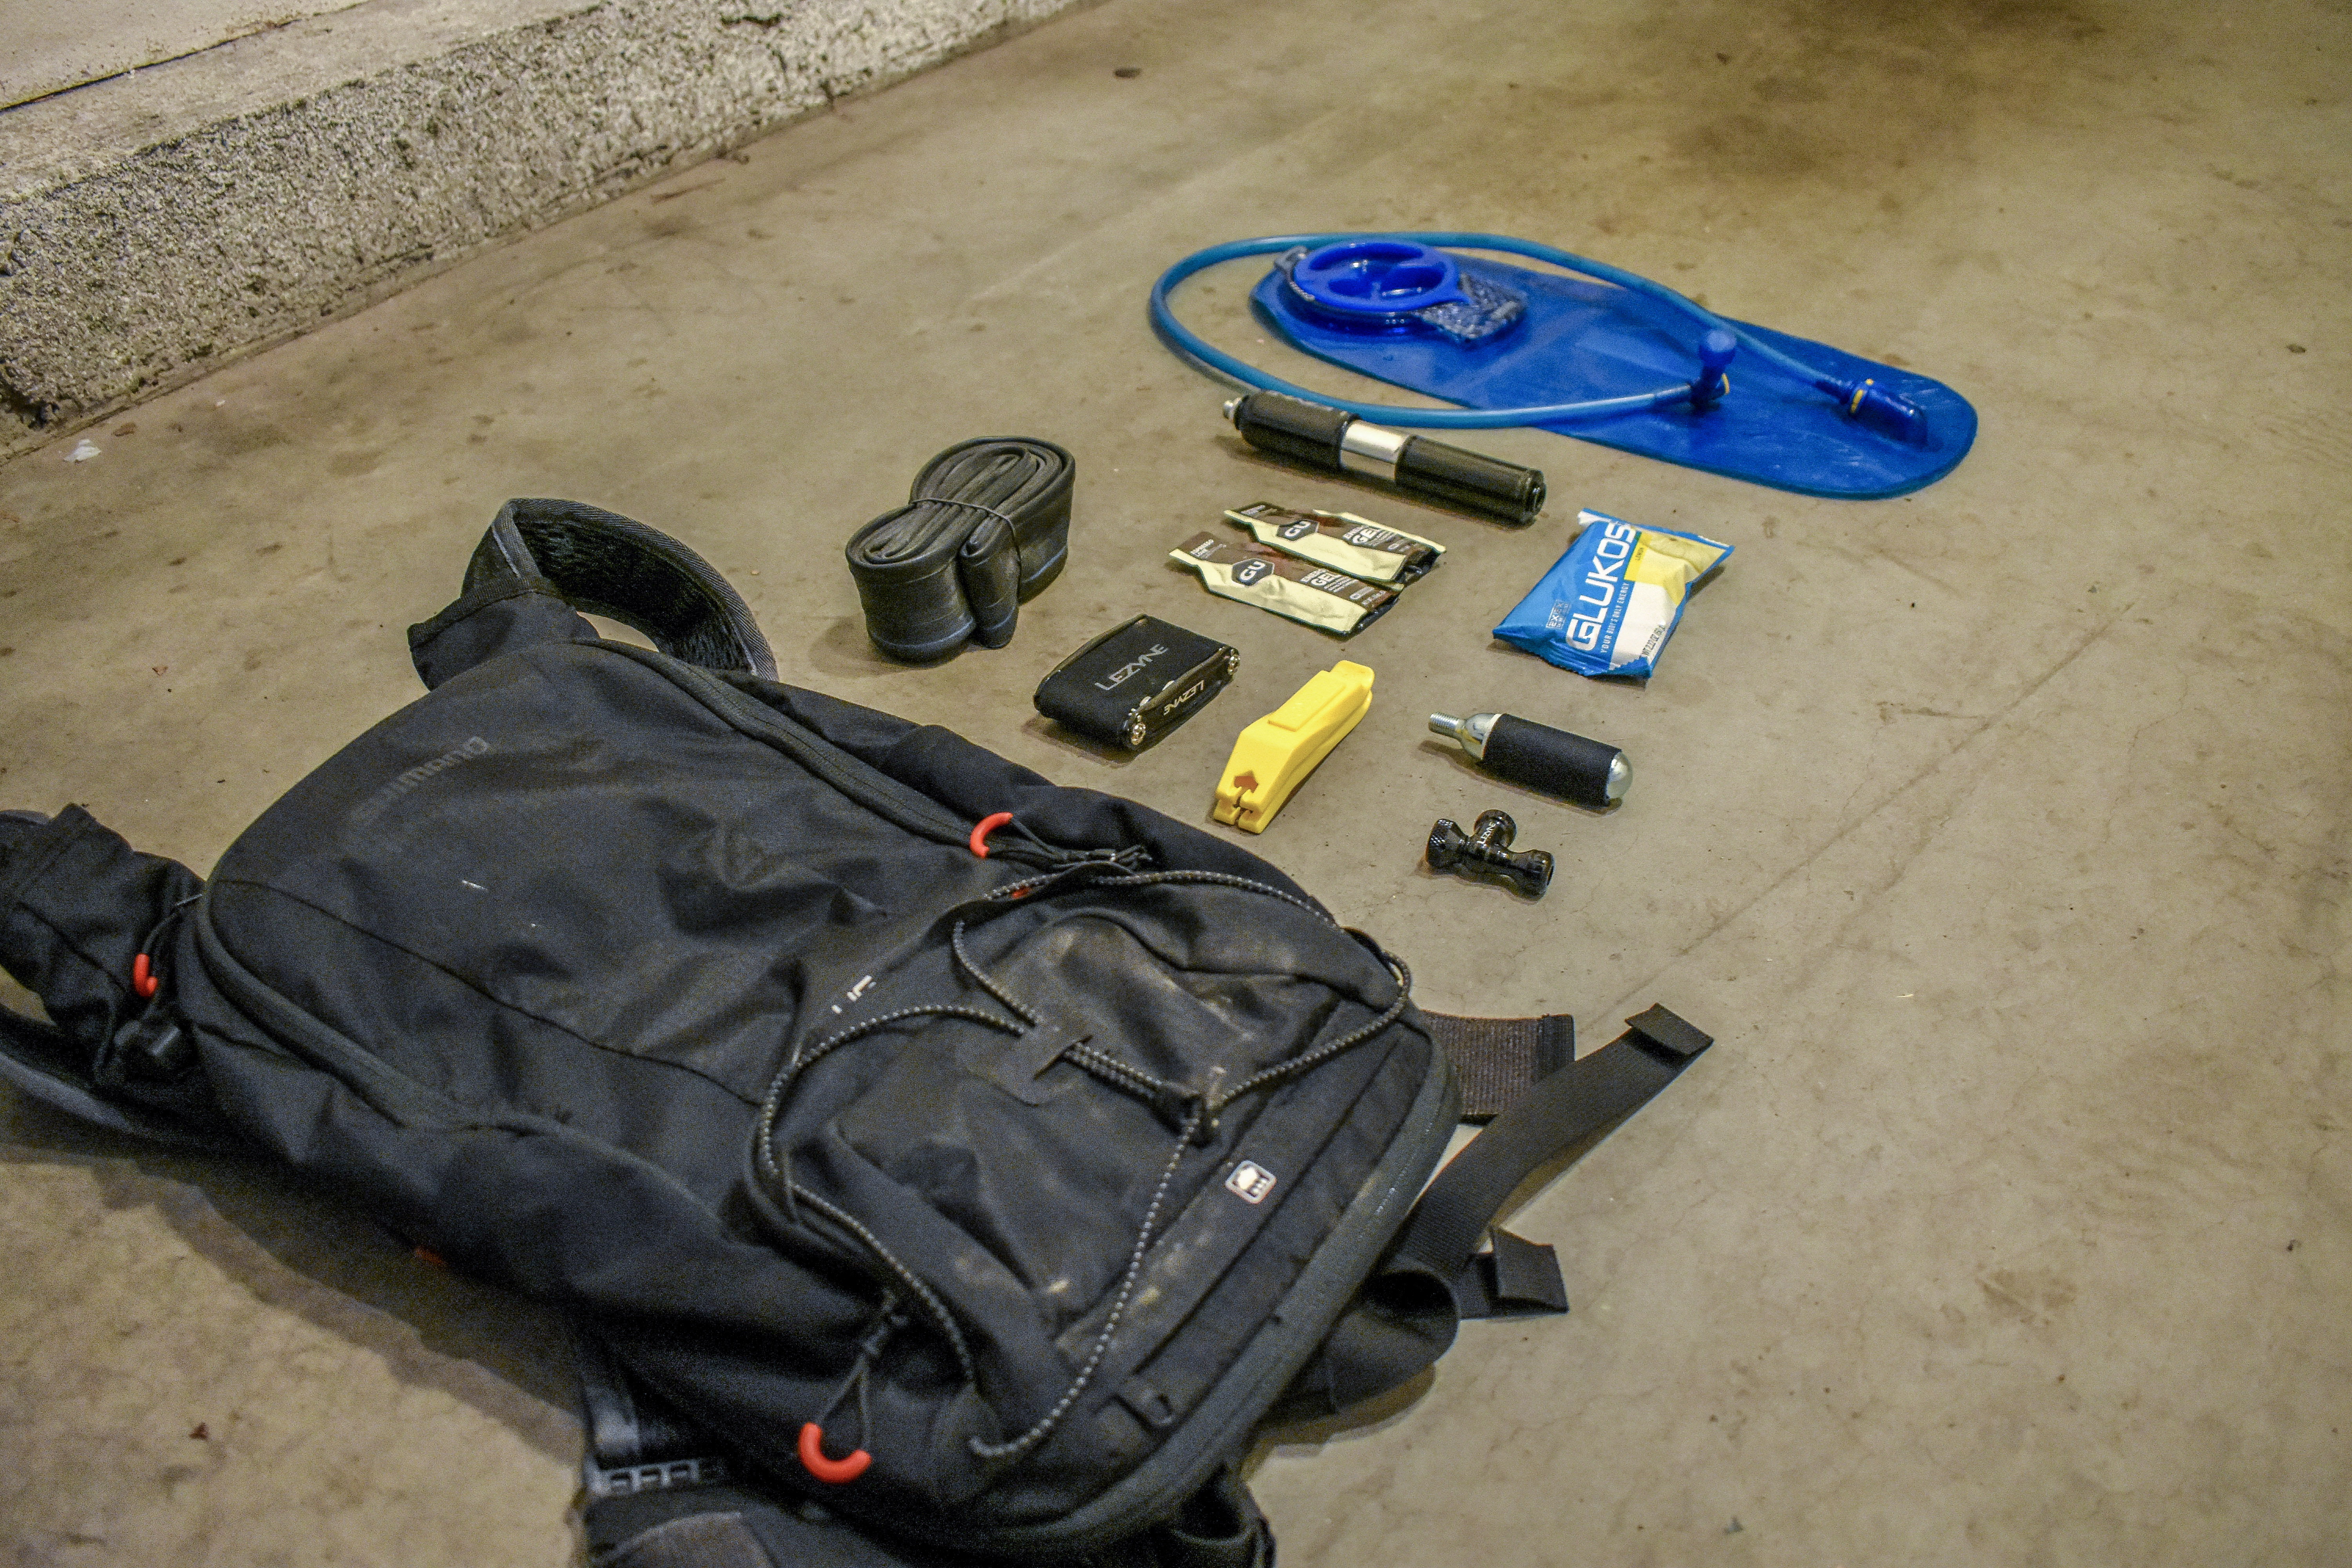 mountain bike pack essentials how to pack for mtb | #scoutofmind